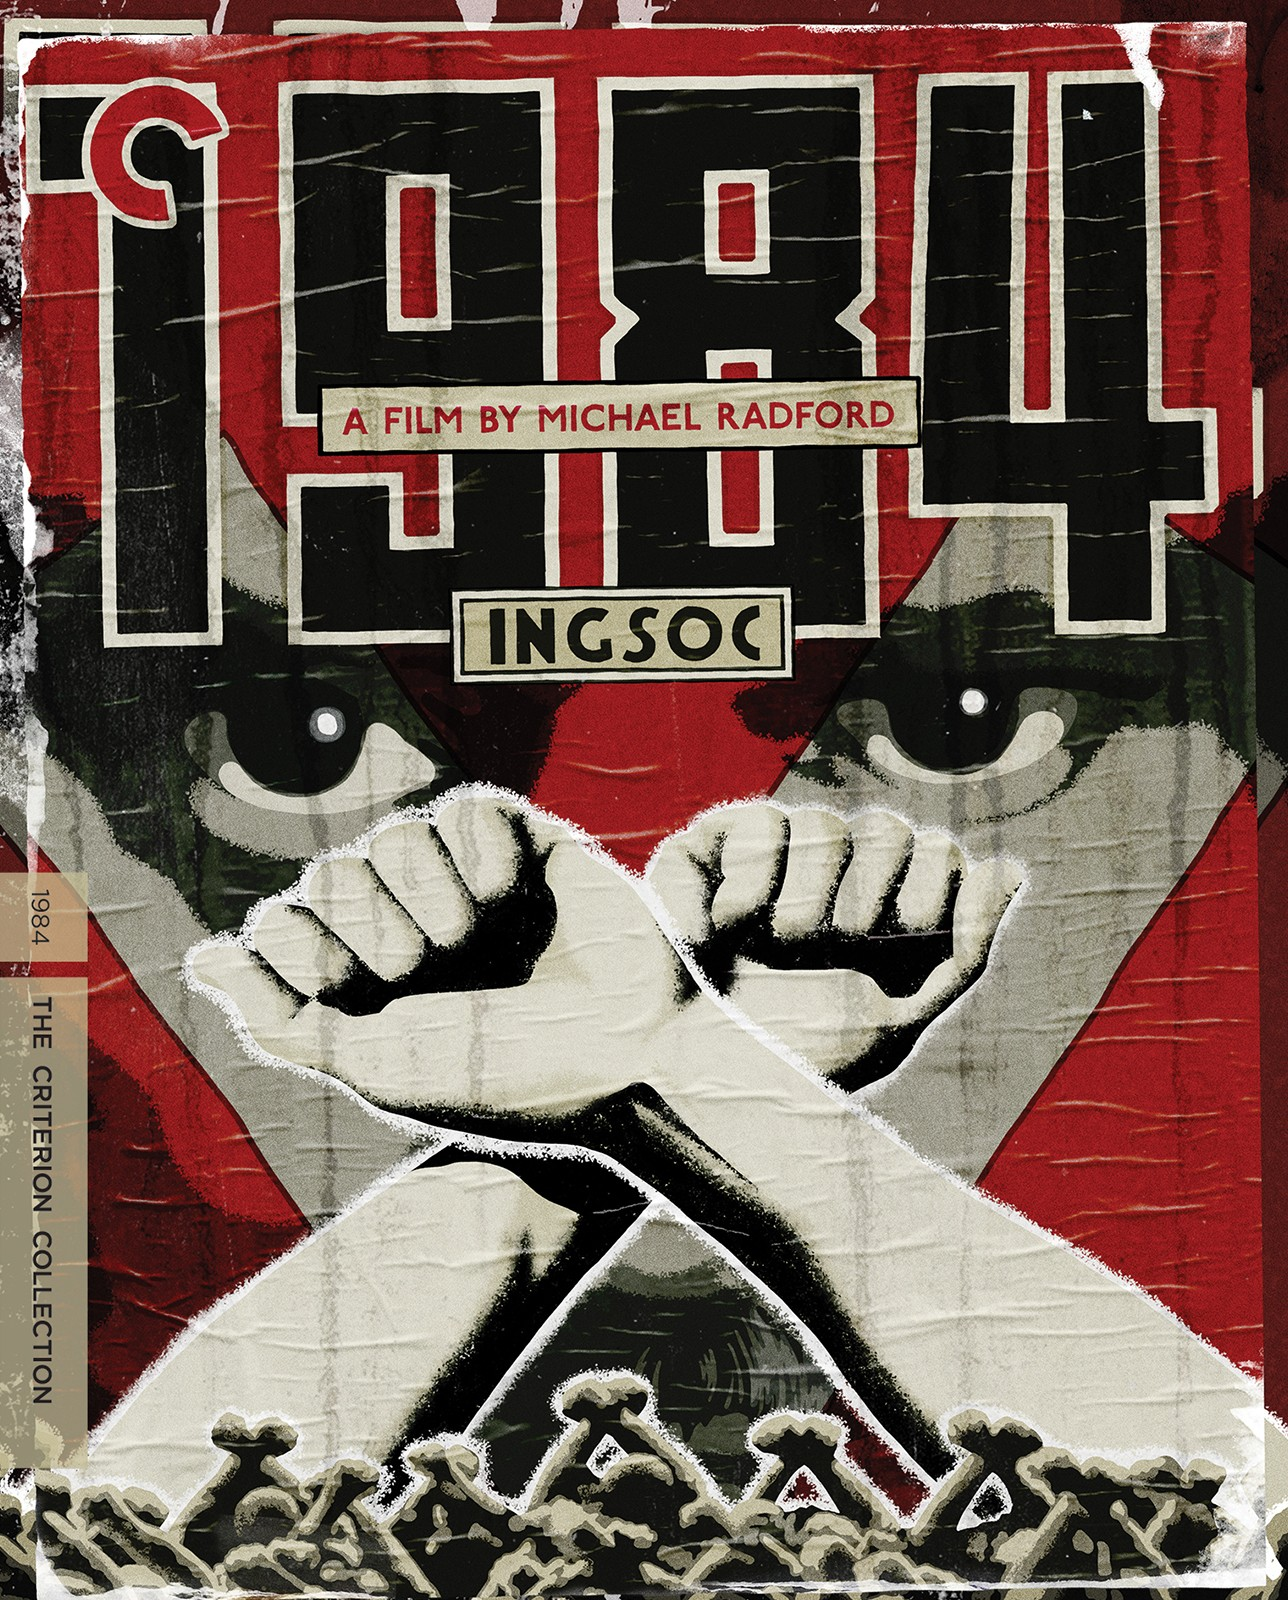 1984 (1984) | The Criterion Collection